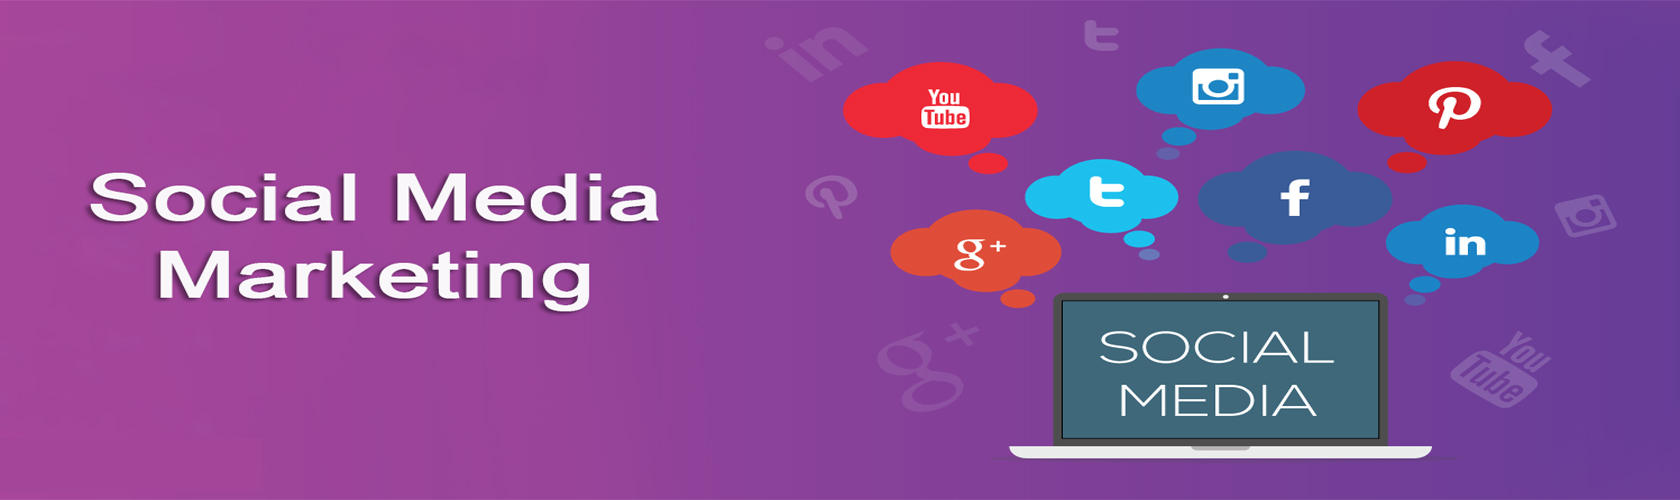 The best thing is to have the best social media agency in Dubai that gives you the best strategies